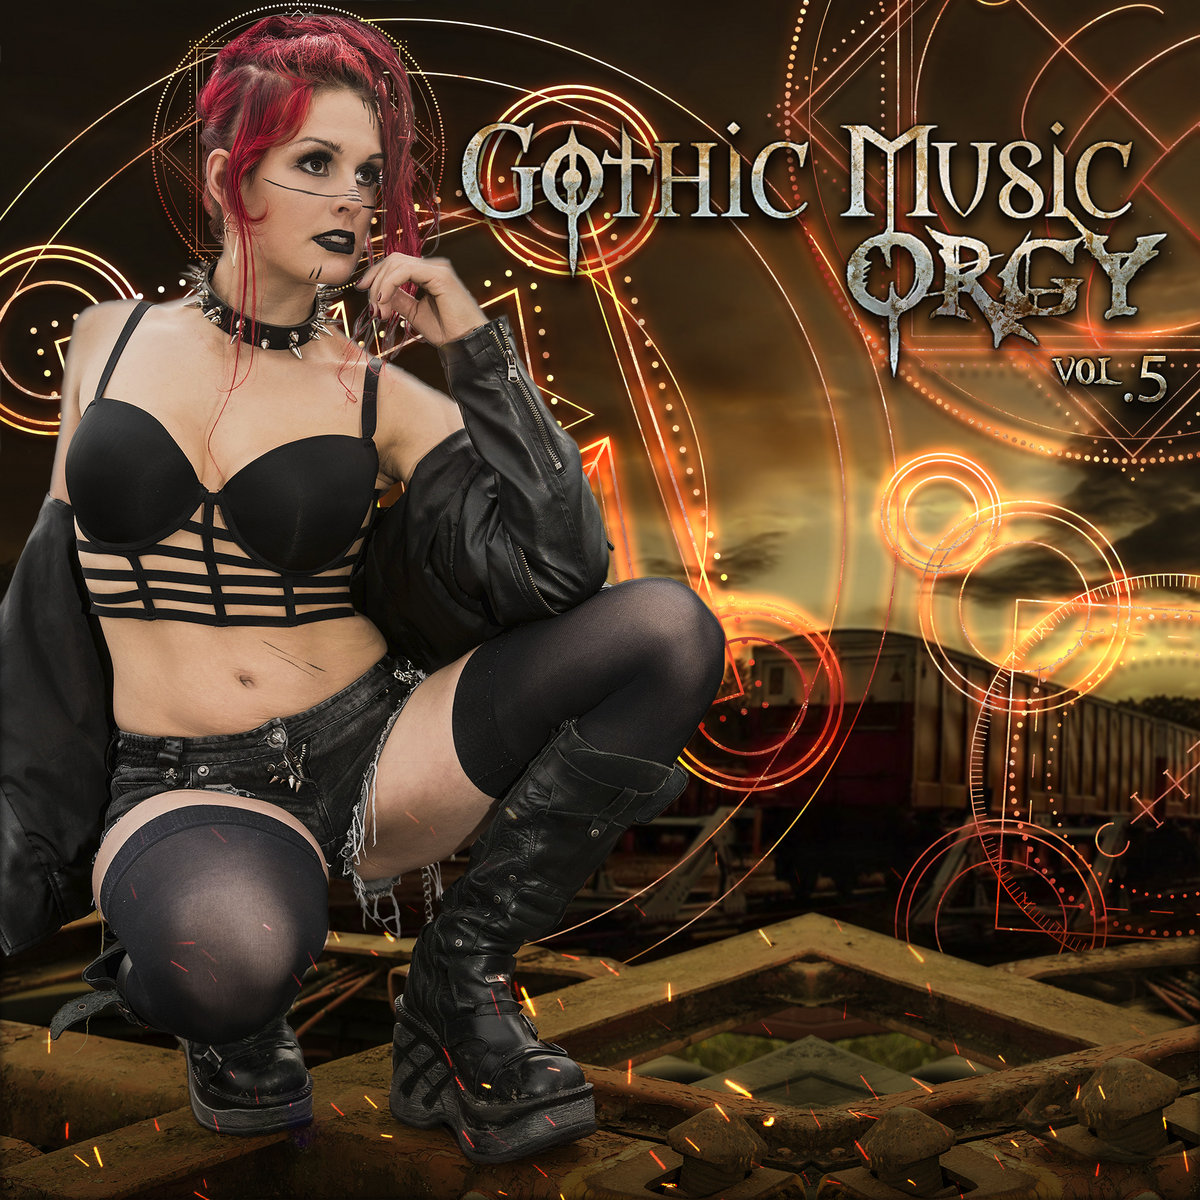 From Gothic Music Orgy Vol 5 By Various Artists